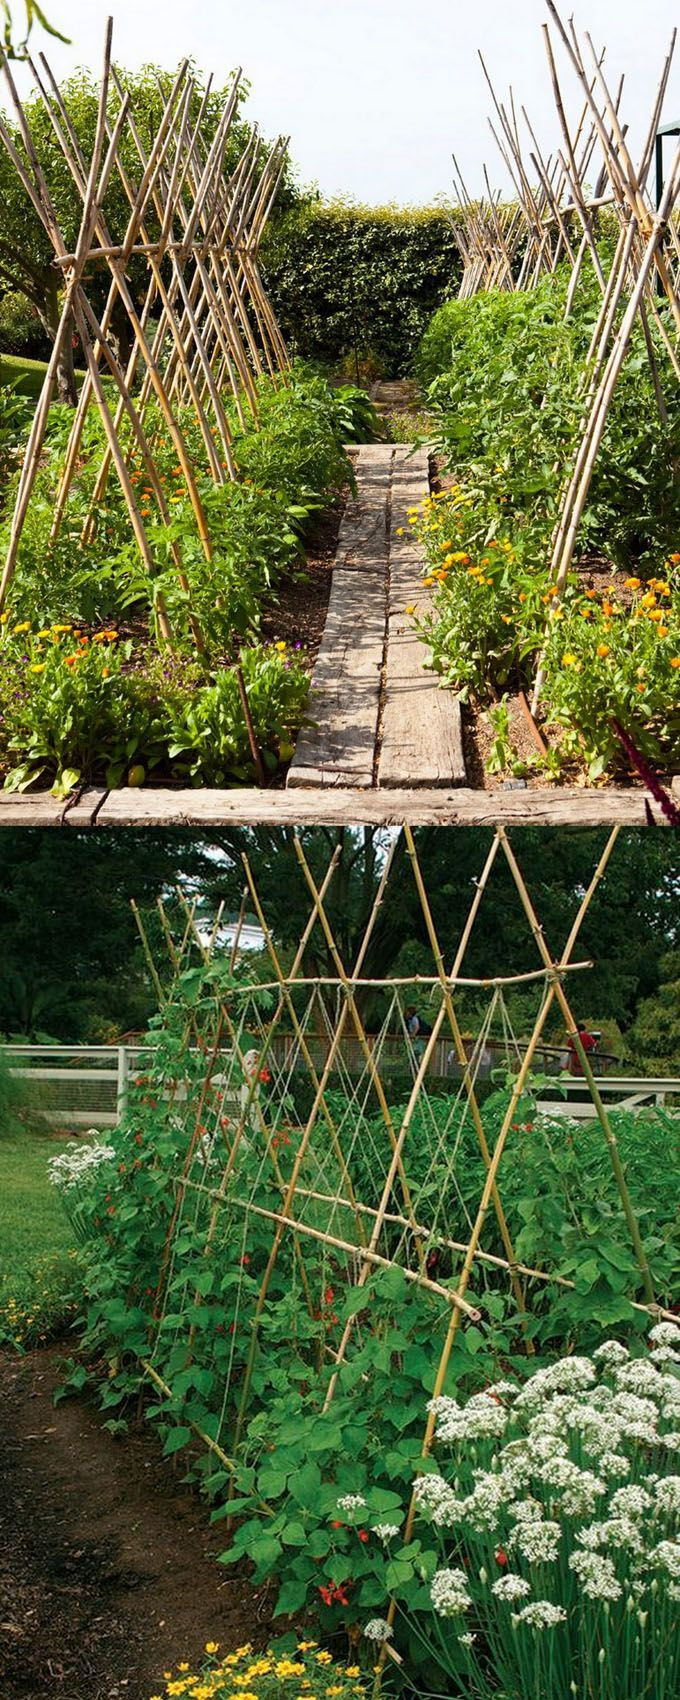 21 easy diy garden trellis ideas vertical growing structures the garden yard plants. Black Bedroom Furniture Sets. Home Design Ideas